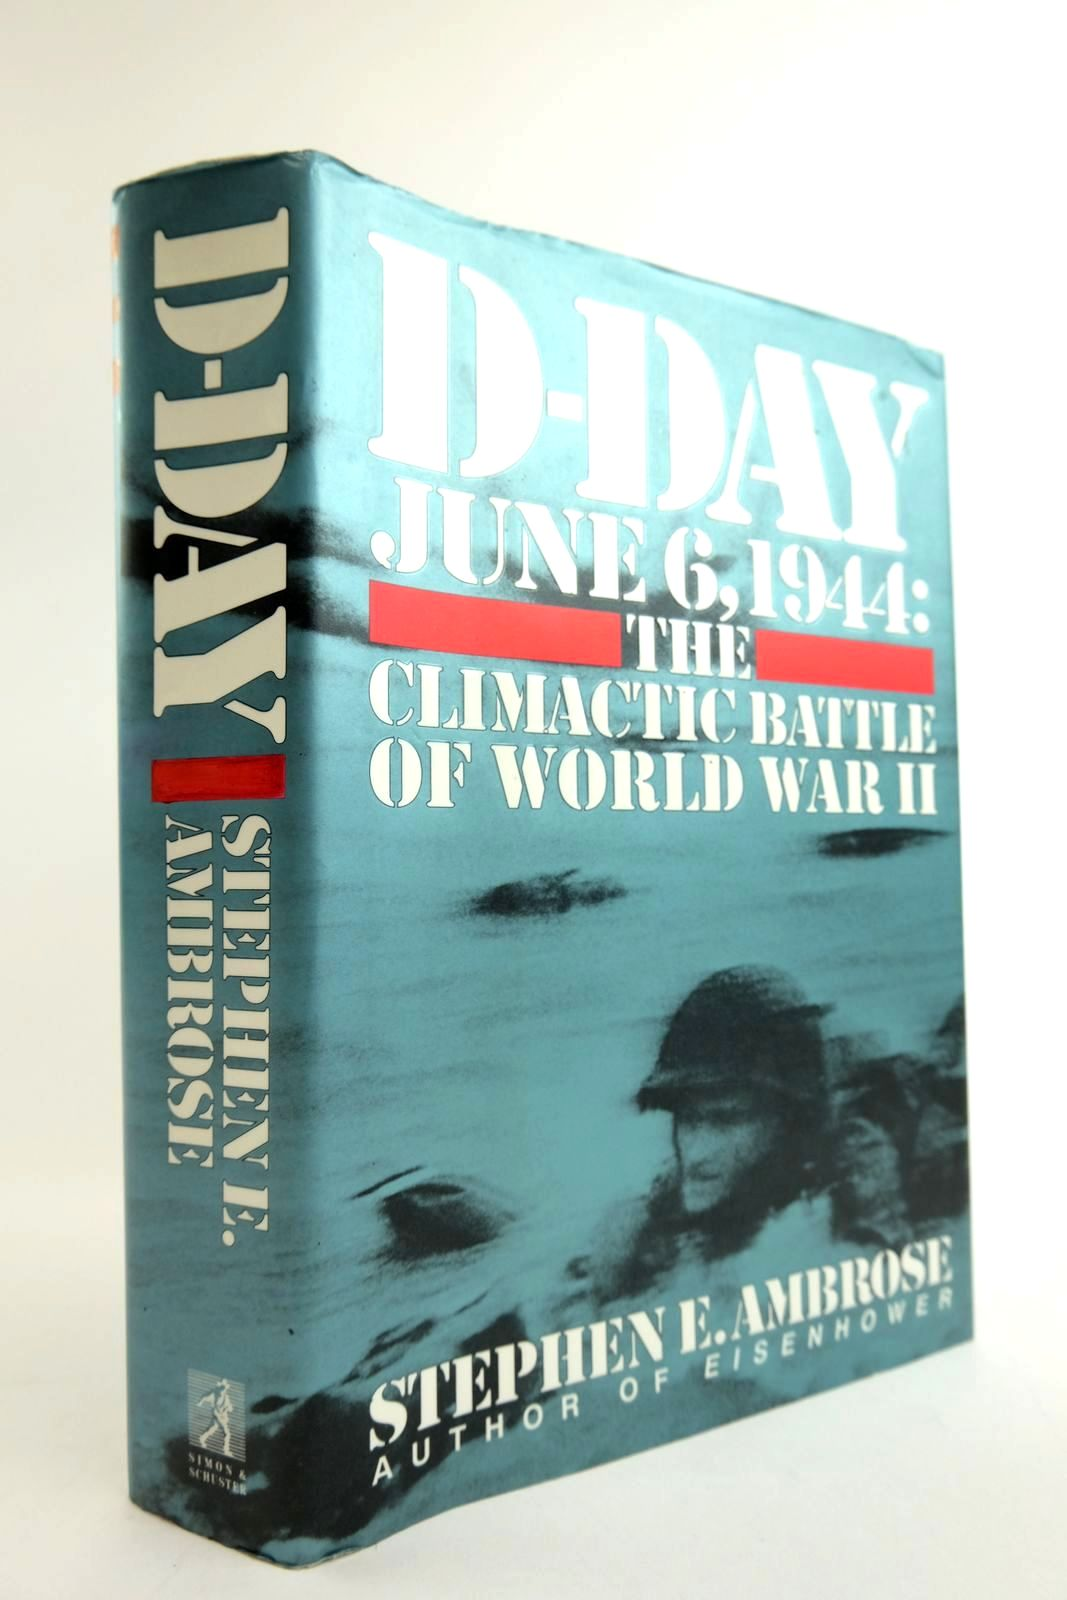 Photo of D-DAY JUNE 6, 1944: THE CLIMACTIC BATTLE OF WORLD WAR II written by Ambrose, Stephen E. published by Simon & Schuster (STOCK CODE: 2133433)  for sale by Stella & Rose's Books